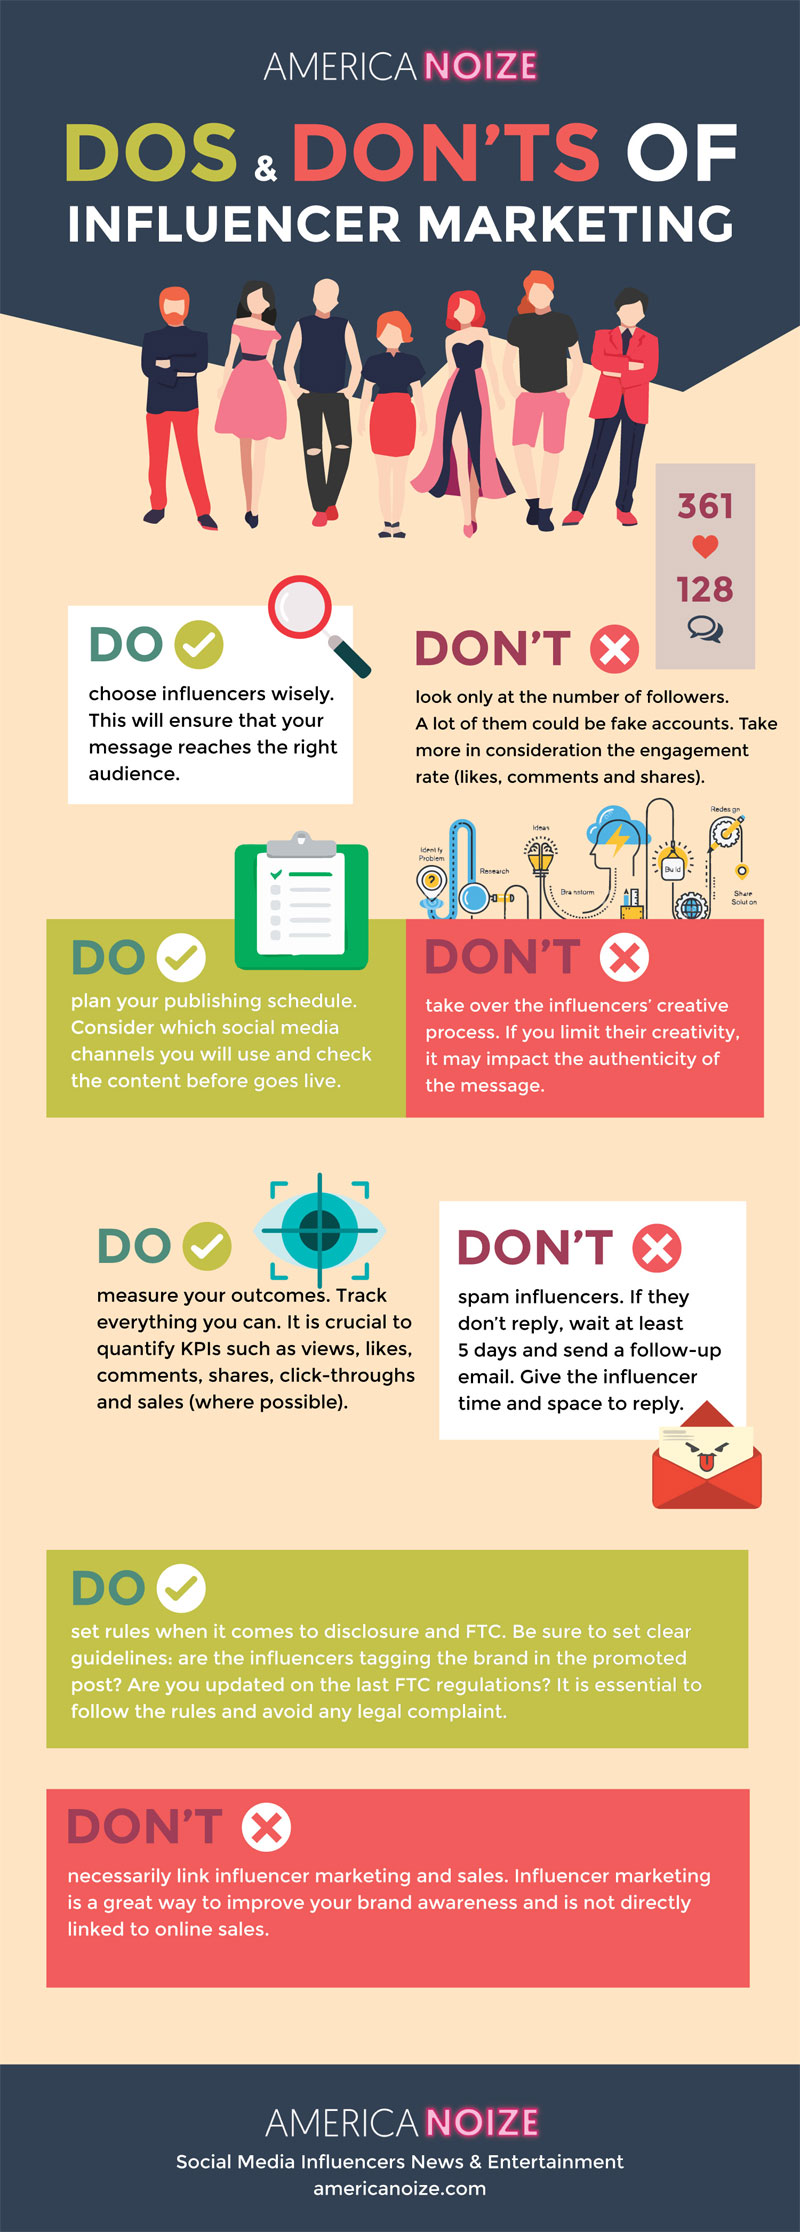 influencer marketing dos donts infographic